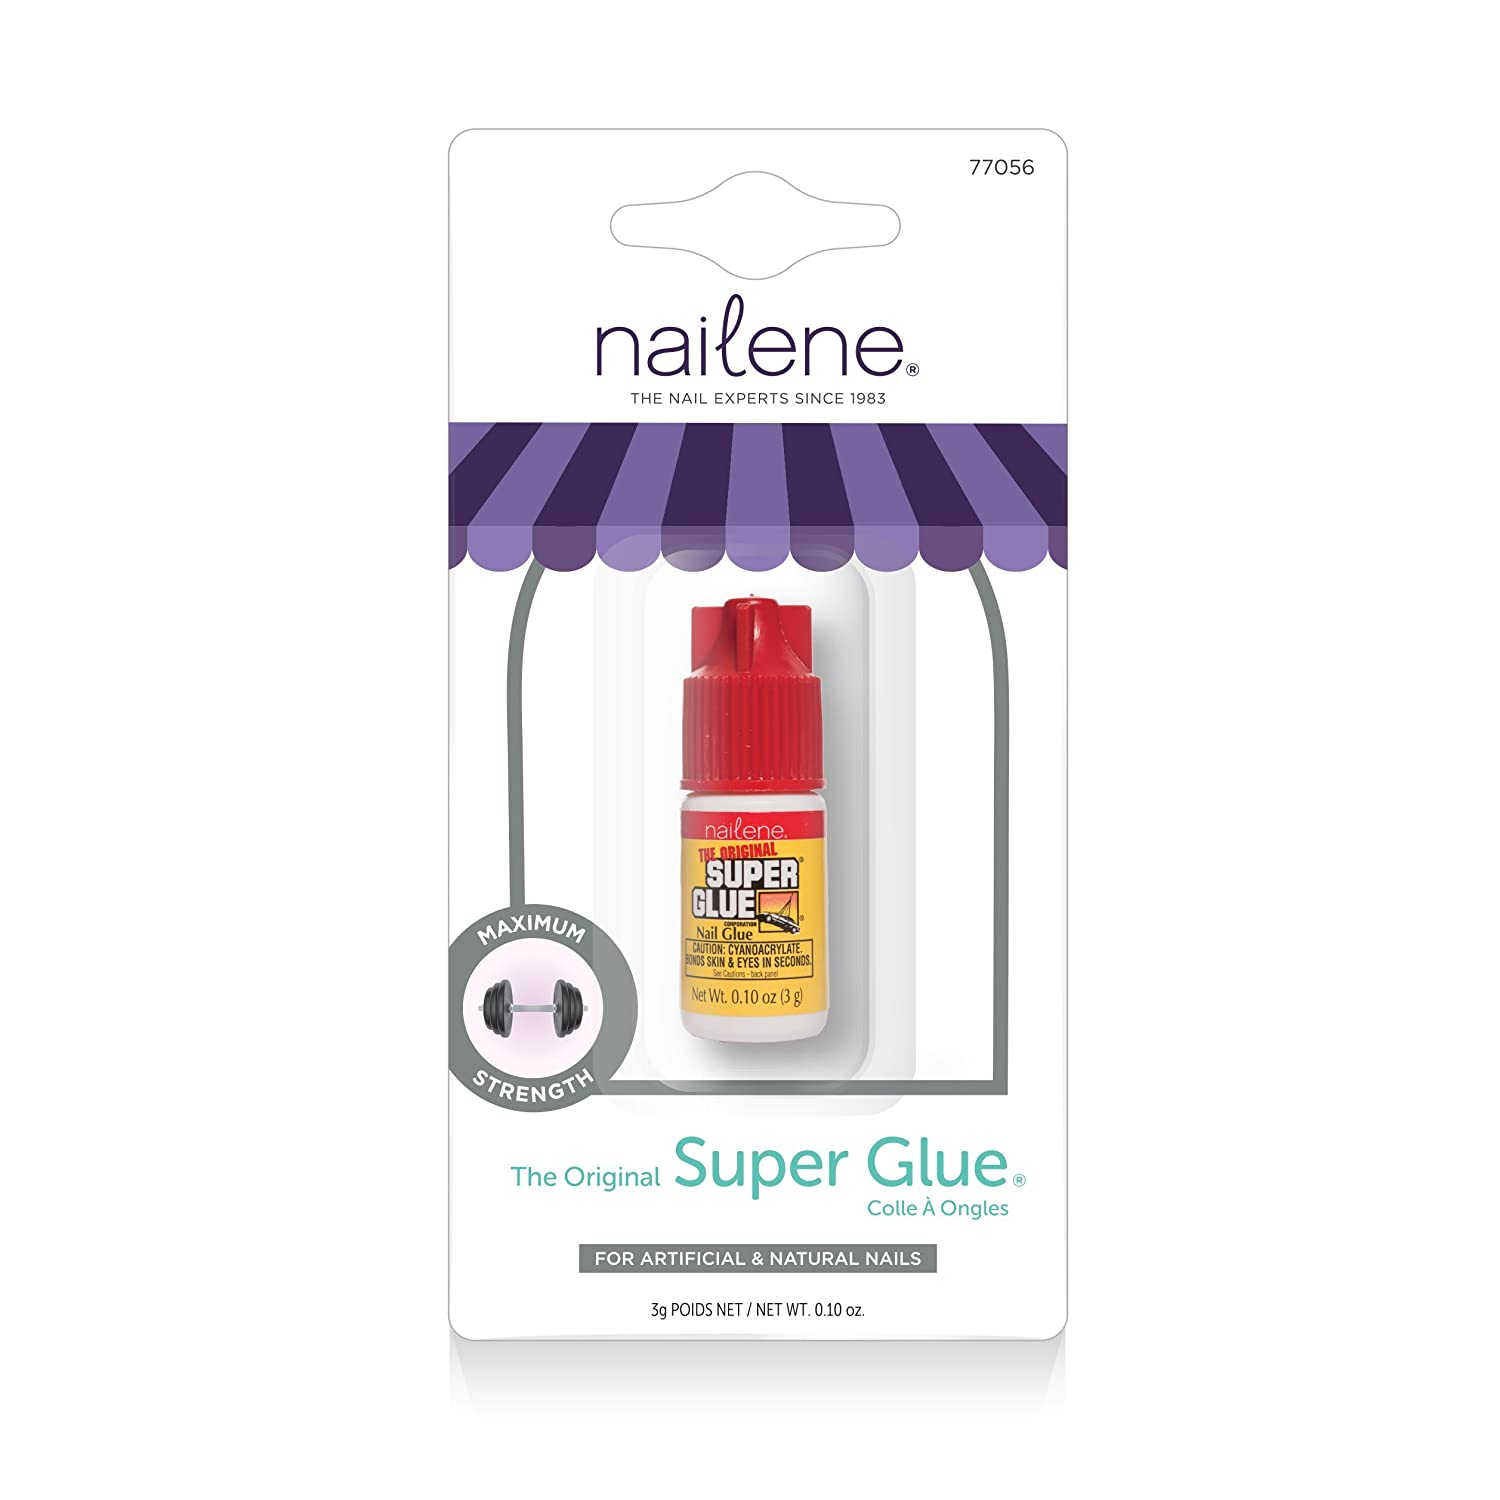 Nailene Super Glue Nails, 11.339g Pacific World Corporation 77056